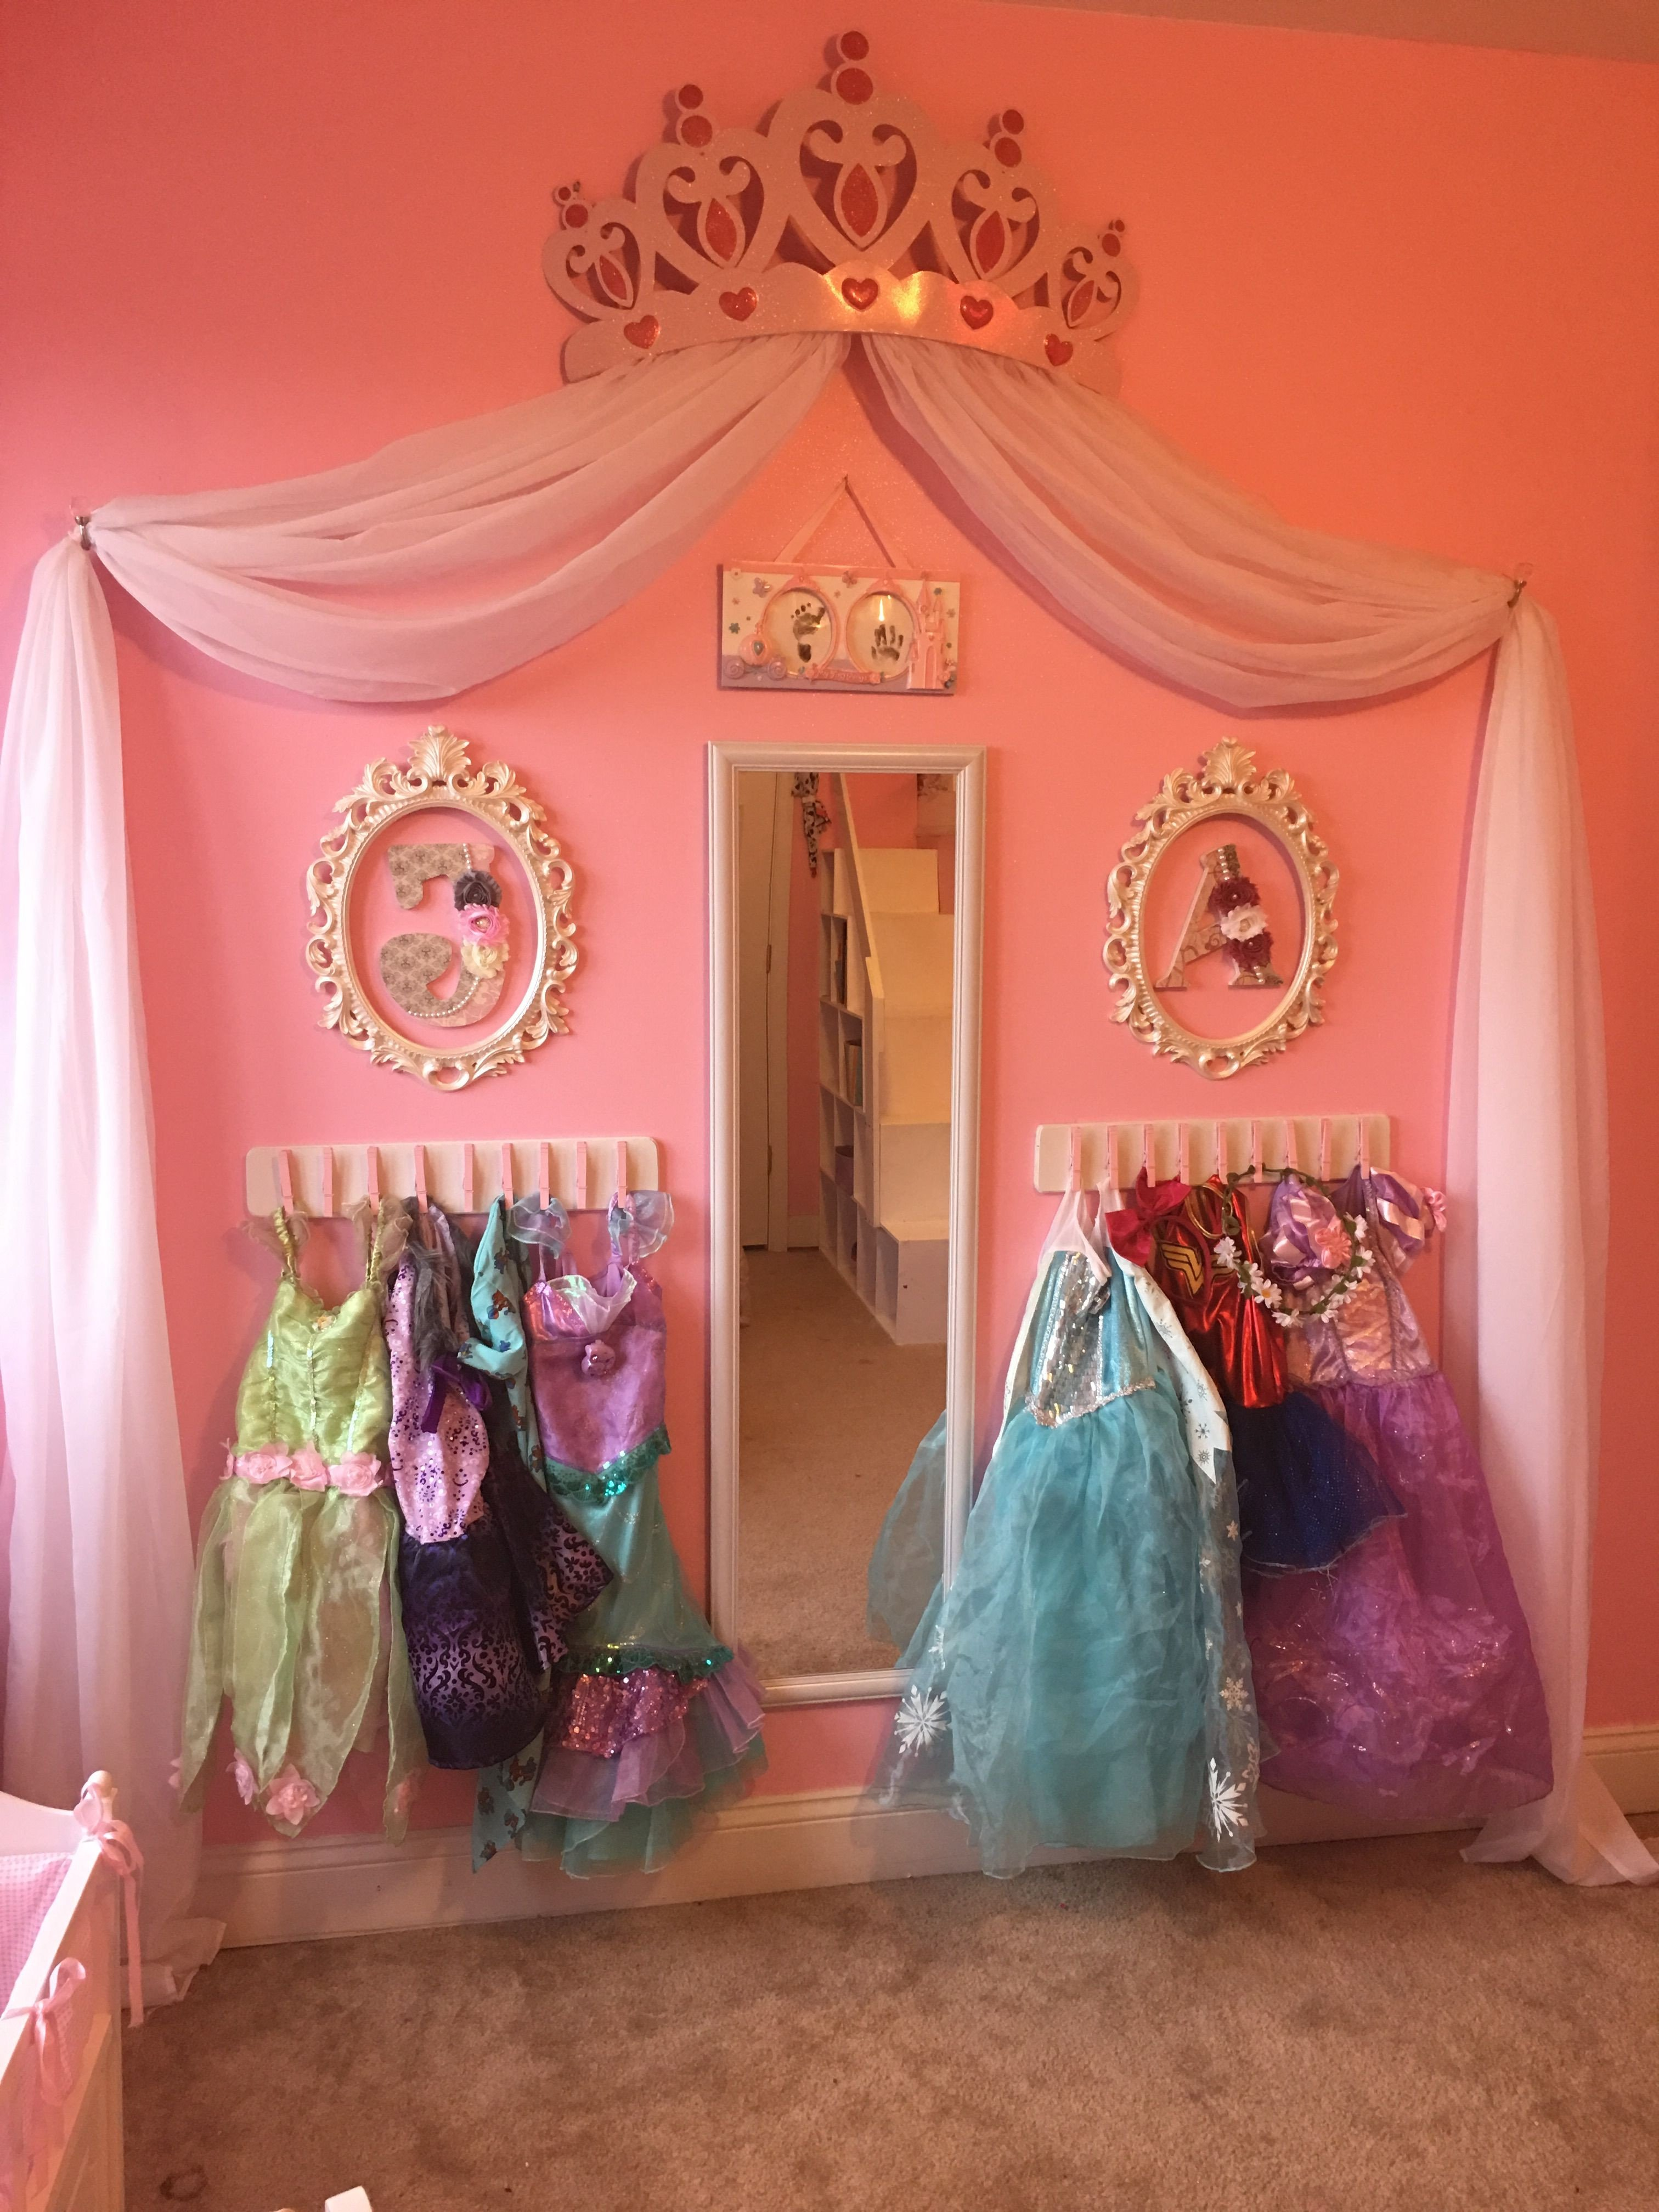 My Little Pony Bedroom Decor Fresh Princess Dress Up Storage Diy Cheap and Super Easy Frees